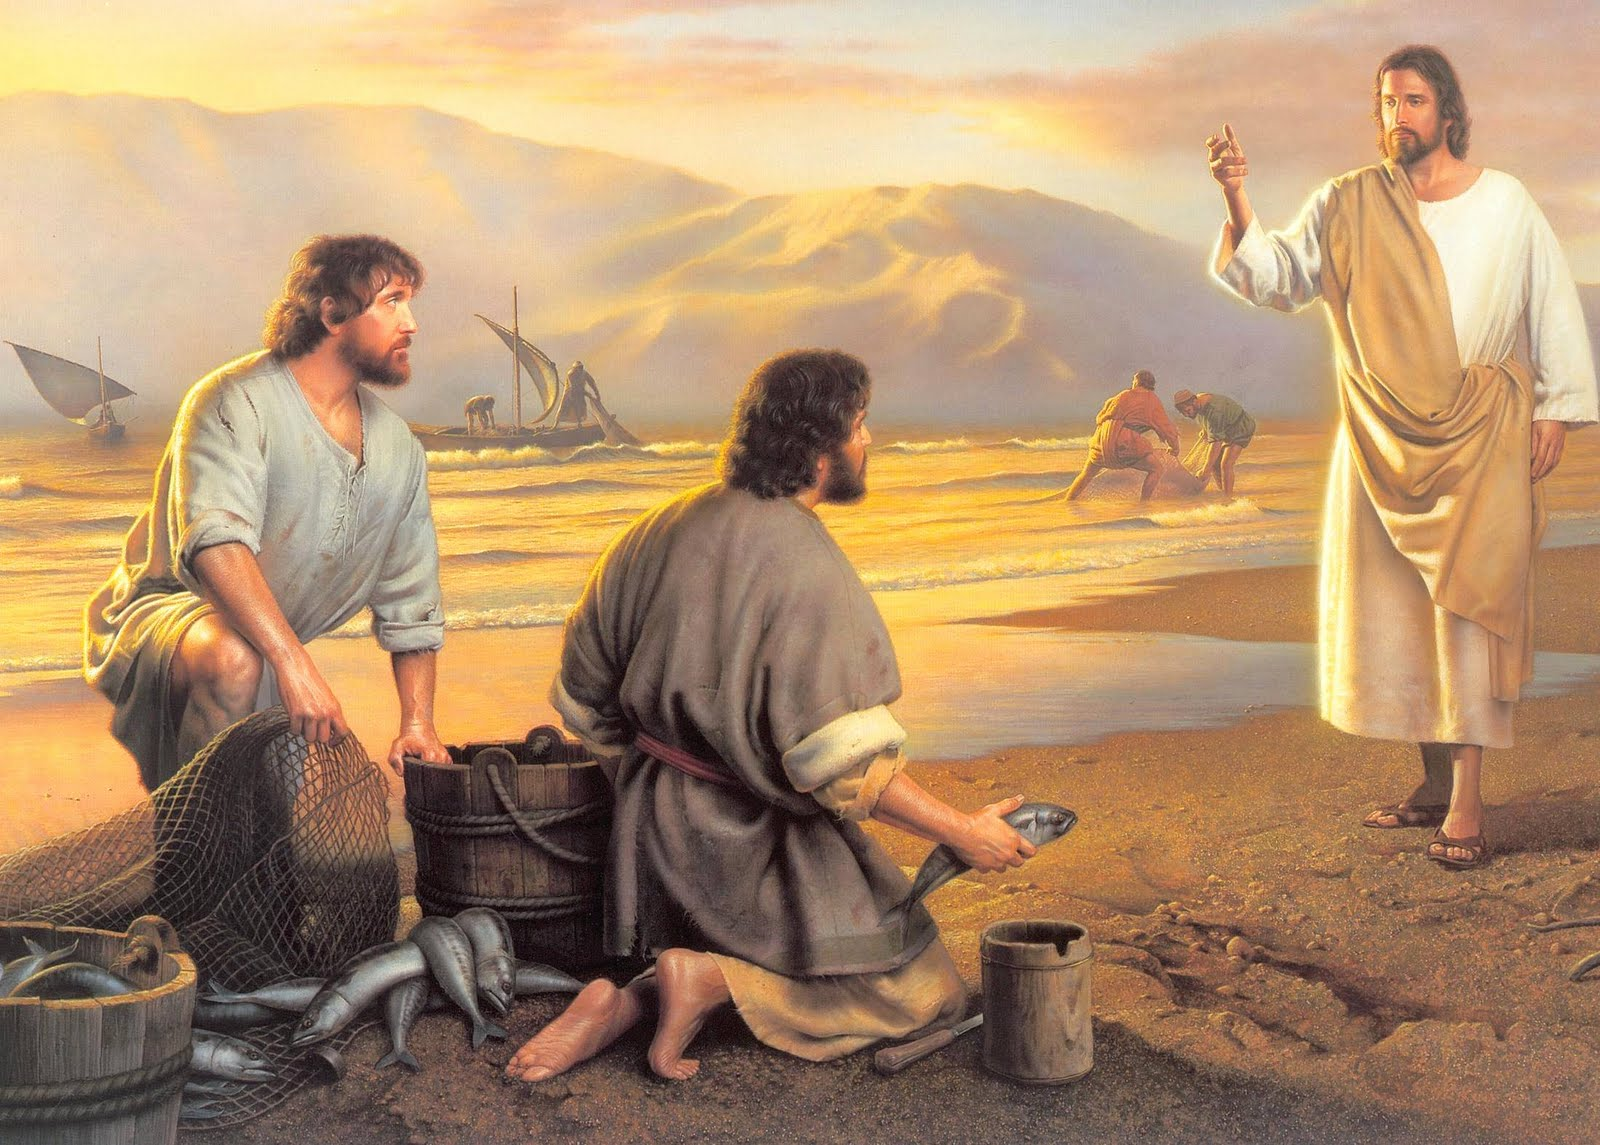 Jesus Miracle Catch of Fish - From Jesus Film Project Videos The Pictures of disciples fishing